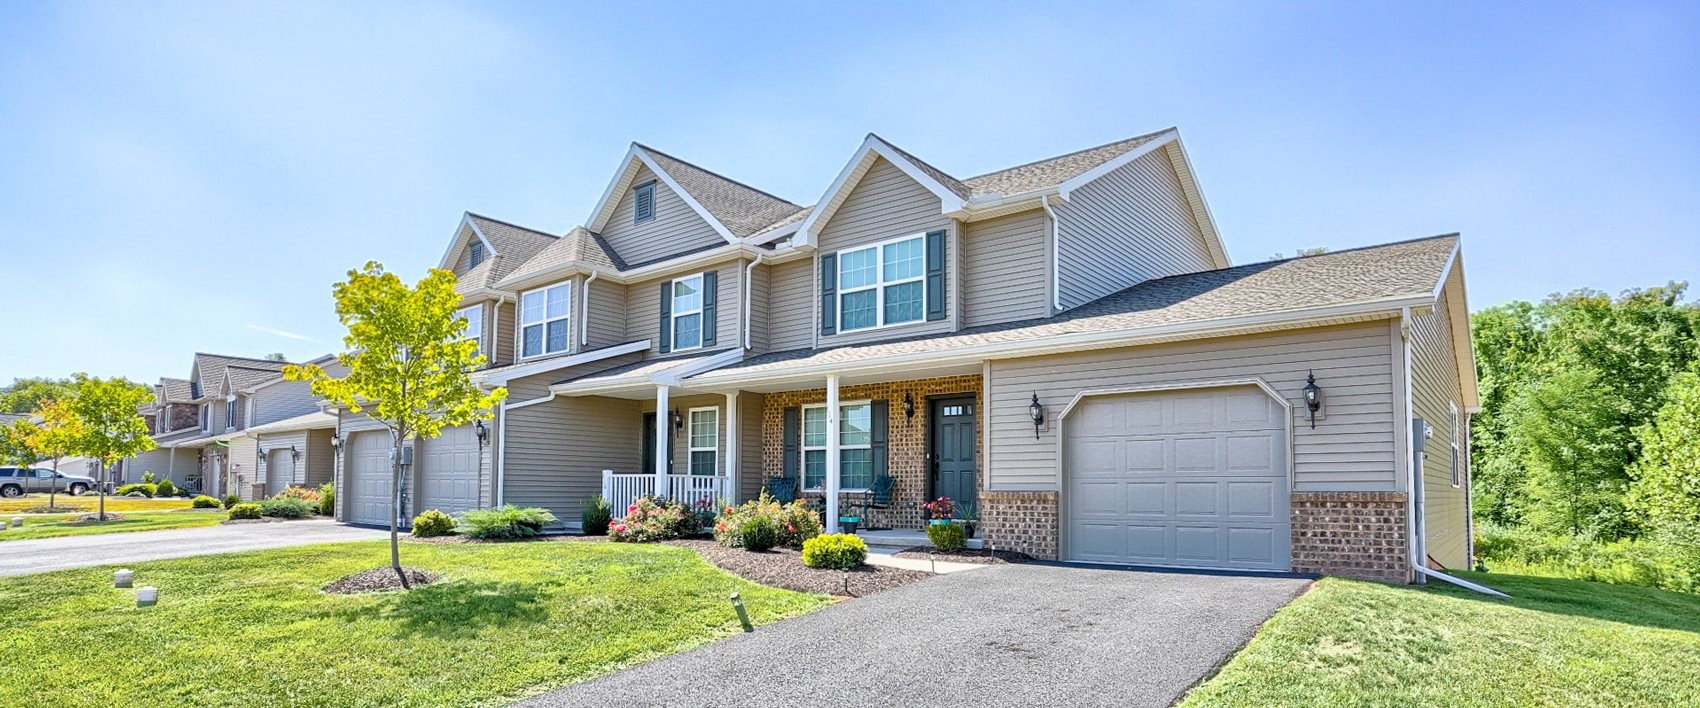 Apartments For Rent in Lewisberry, PA | Glenbrook Town Homes